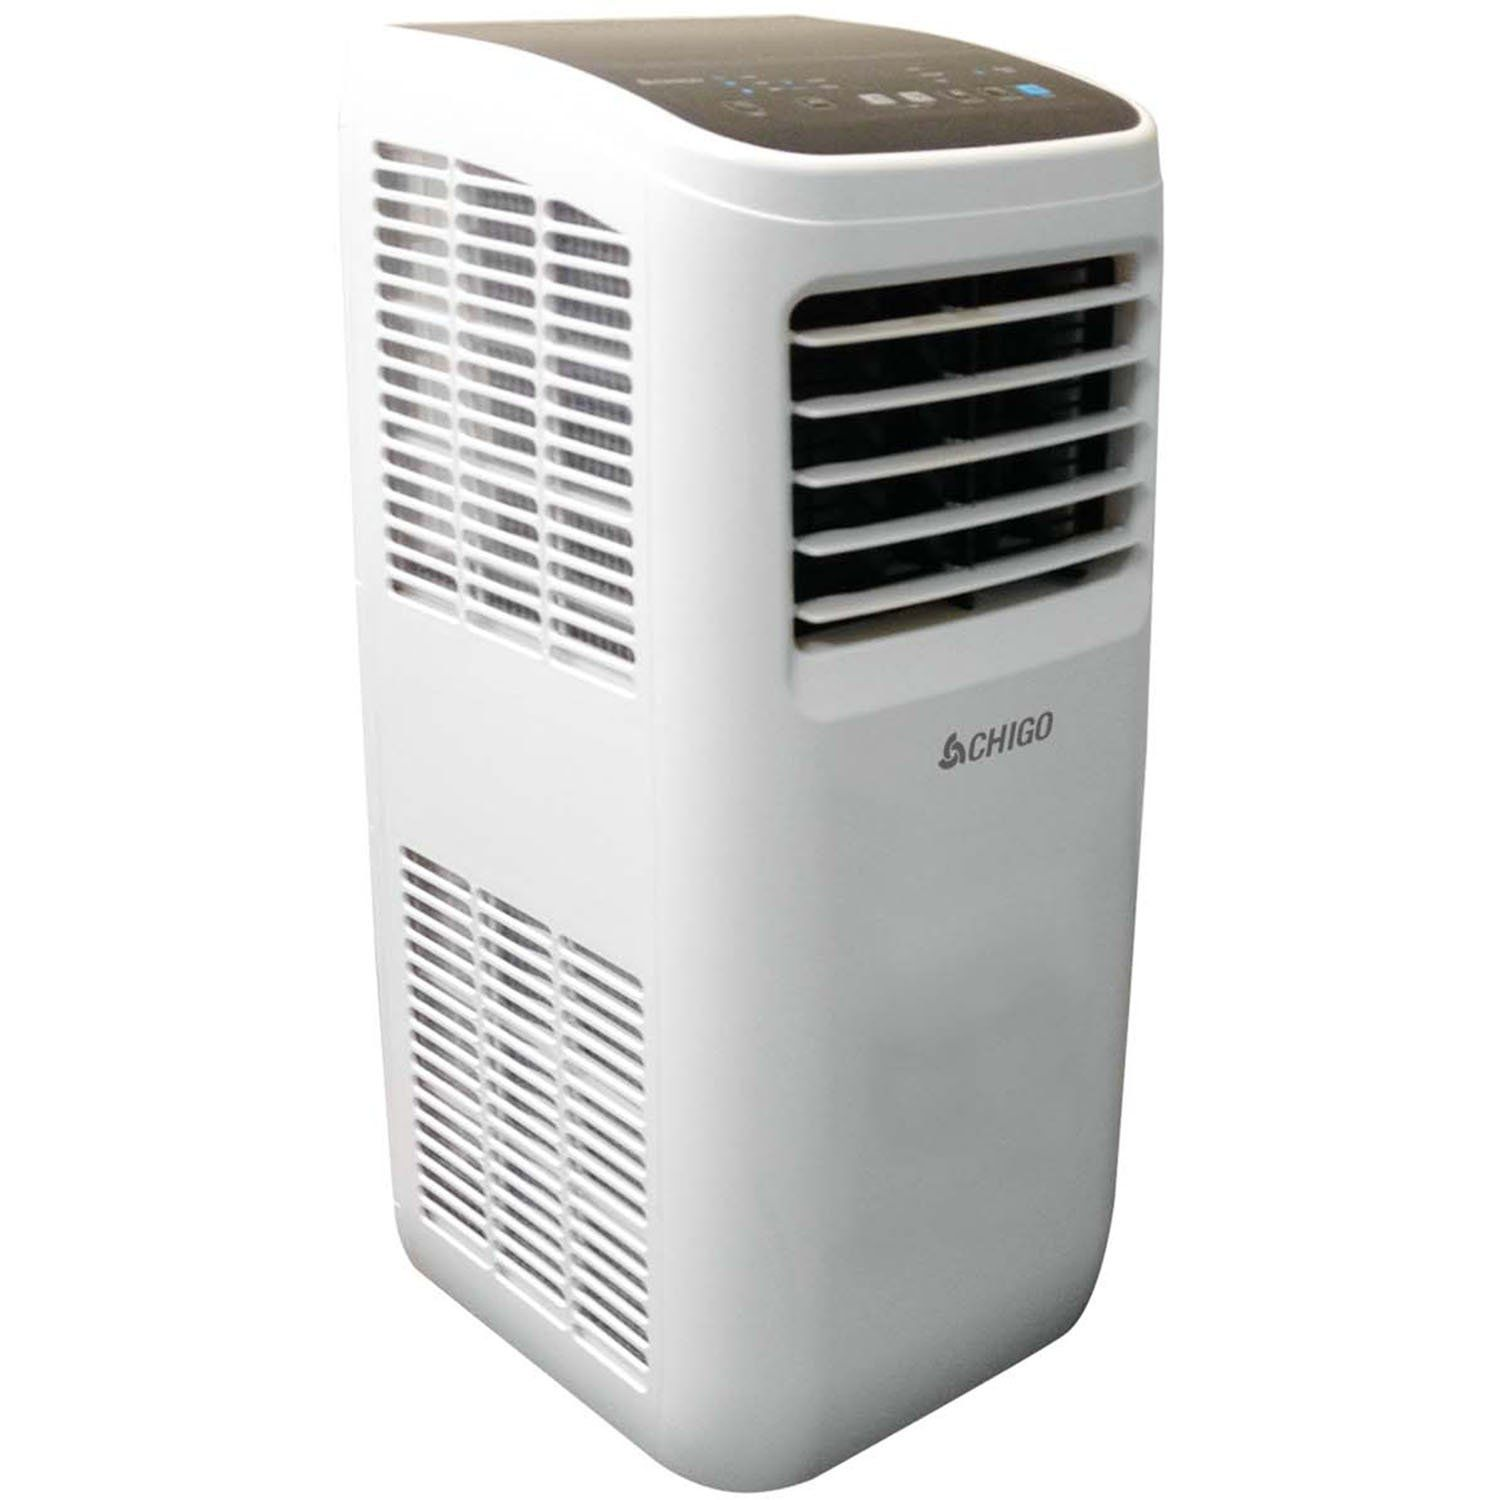 Chigo Pcr1001 Portable Air Conditioner Continue To The Product At The Image Link This Is An Affilia Portable Air Conditioner Air Conditioner Dehumidifiers